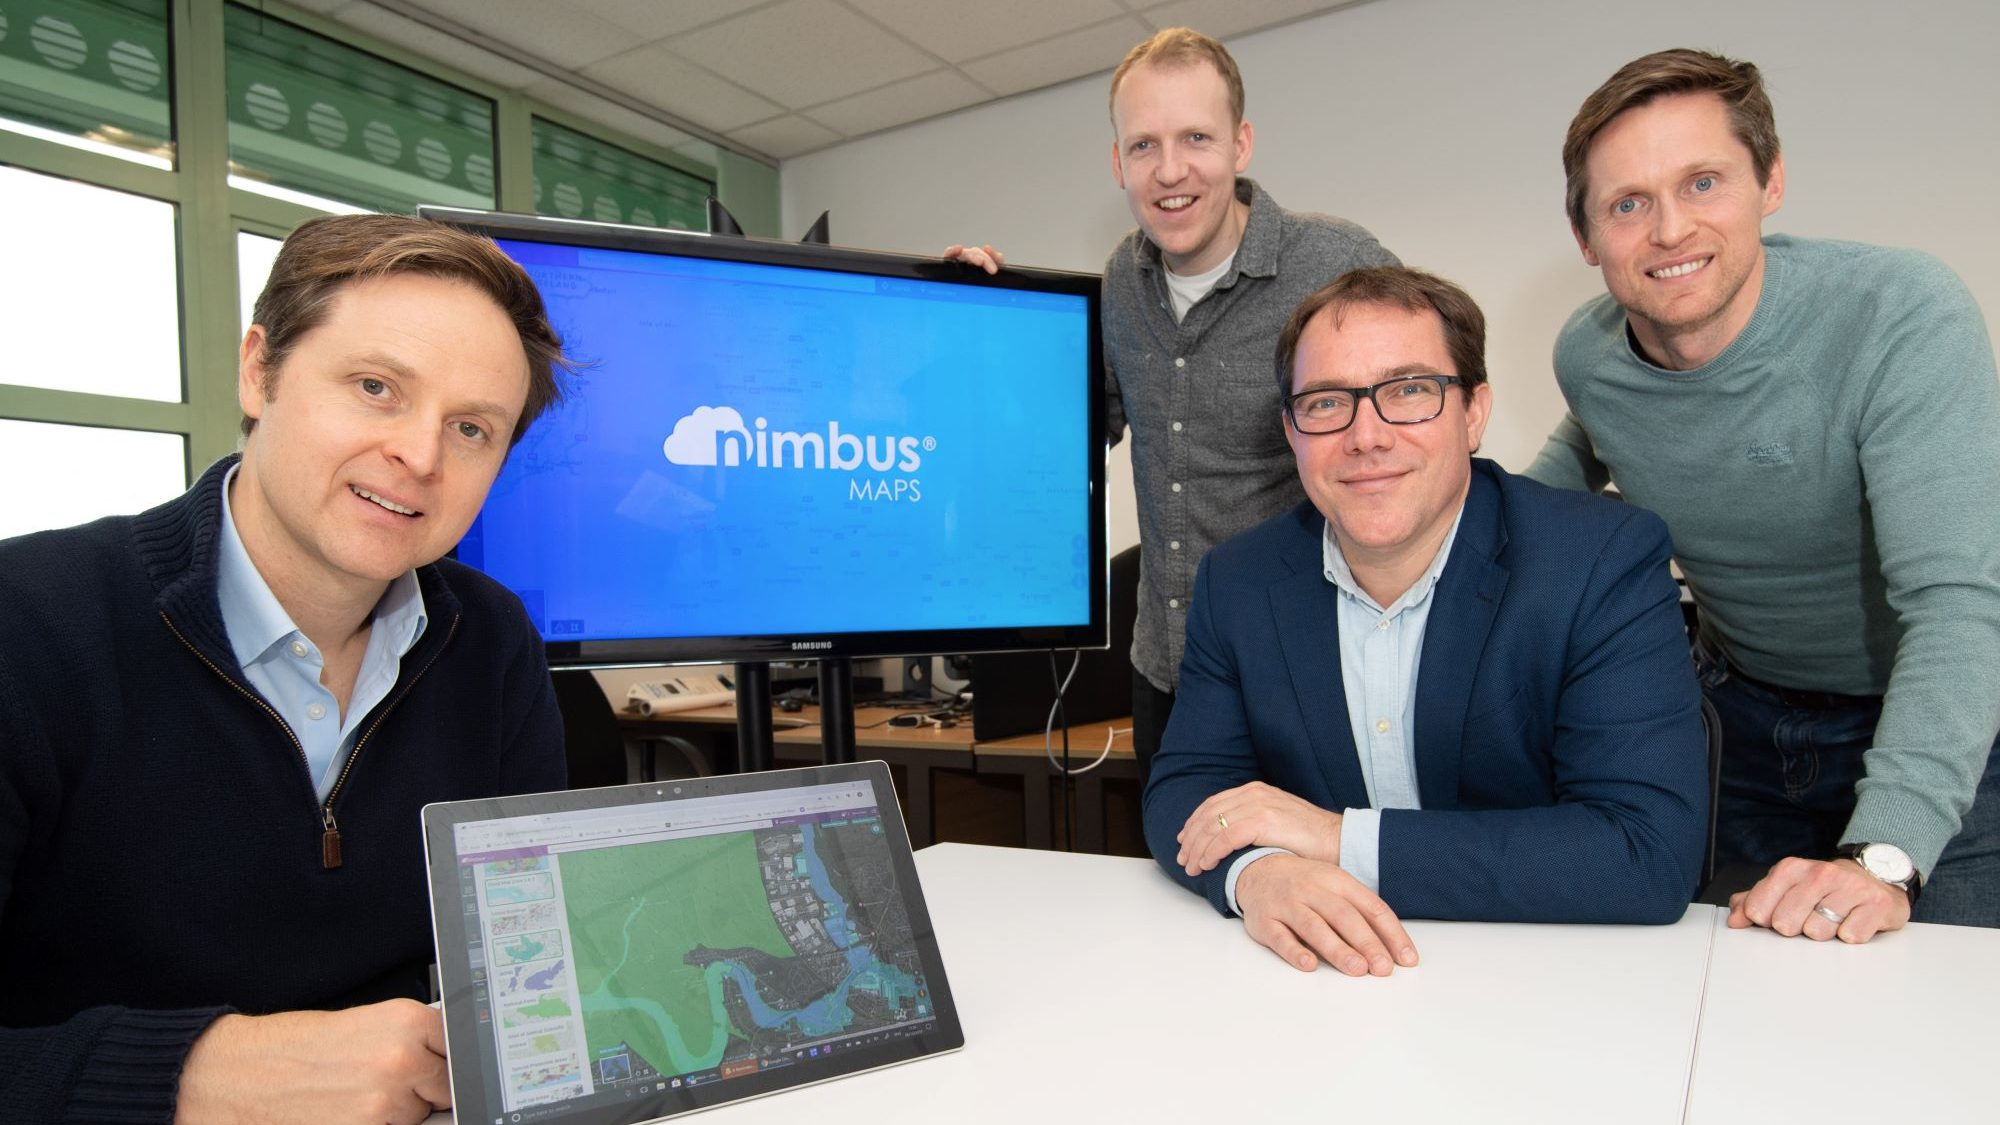 Nimbus Maps charts course to hyper-growth